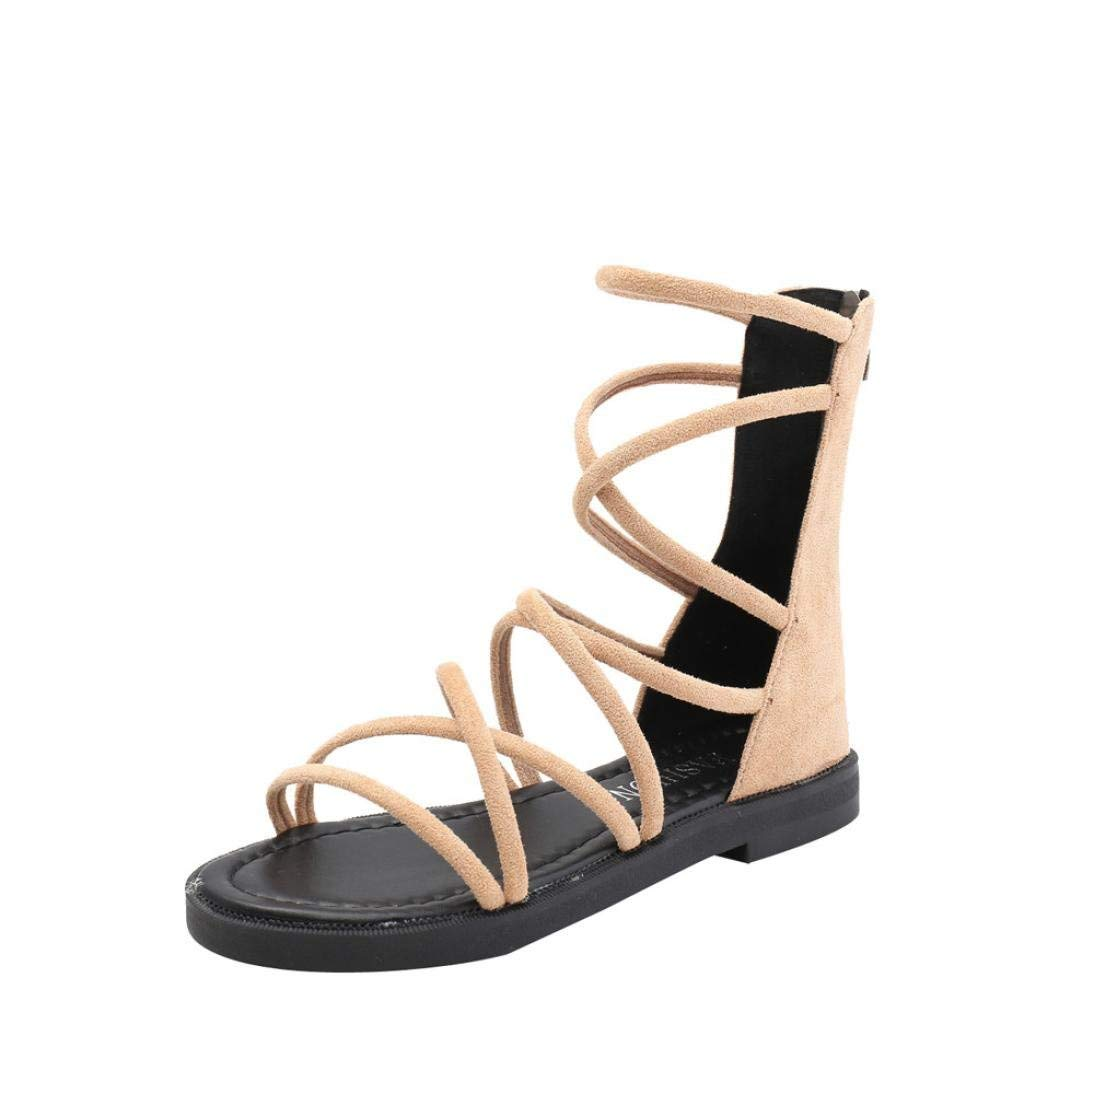 ee915df895191e Get Quotations · Women Fashion Solid Color Cross Tied Sandals With Back  Zipper Ankle Strap Flat Sandals Rome Shoes